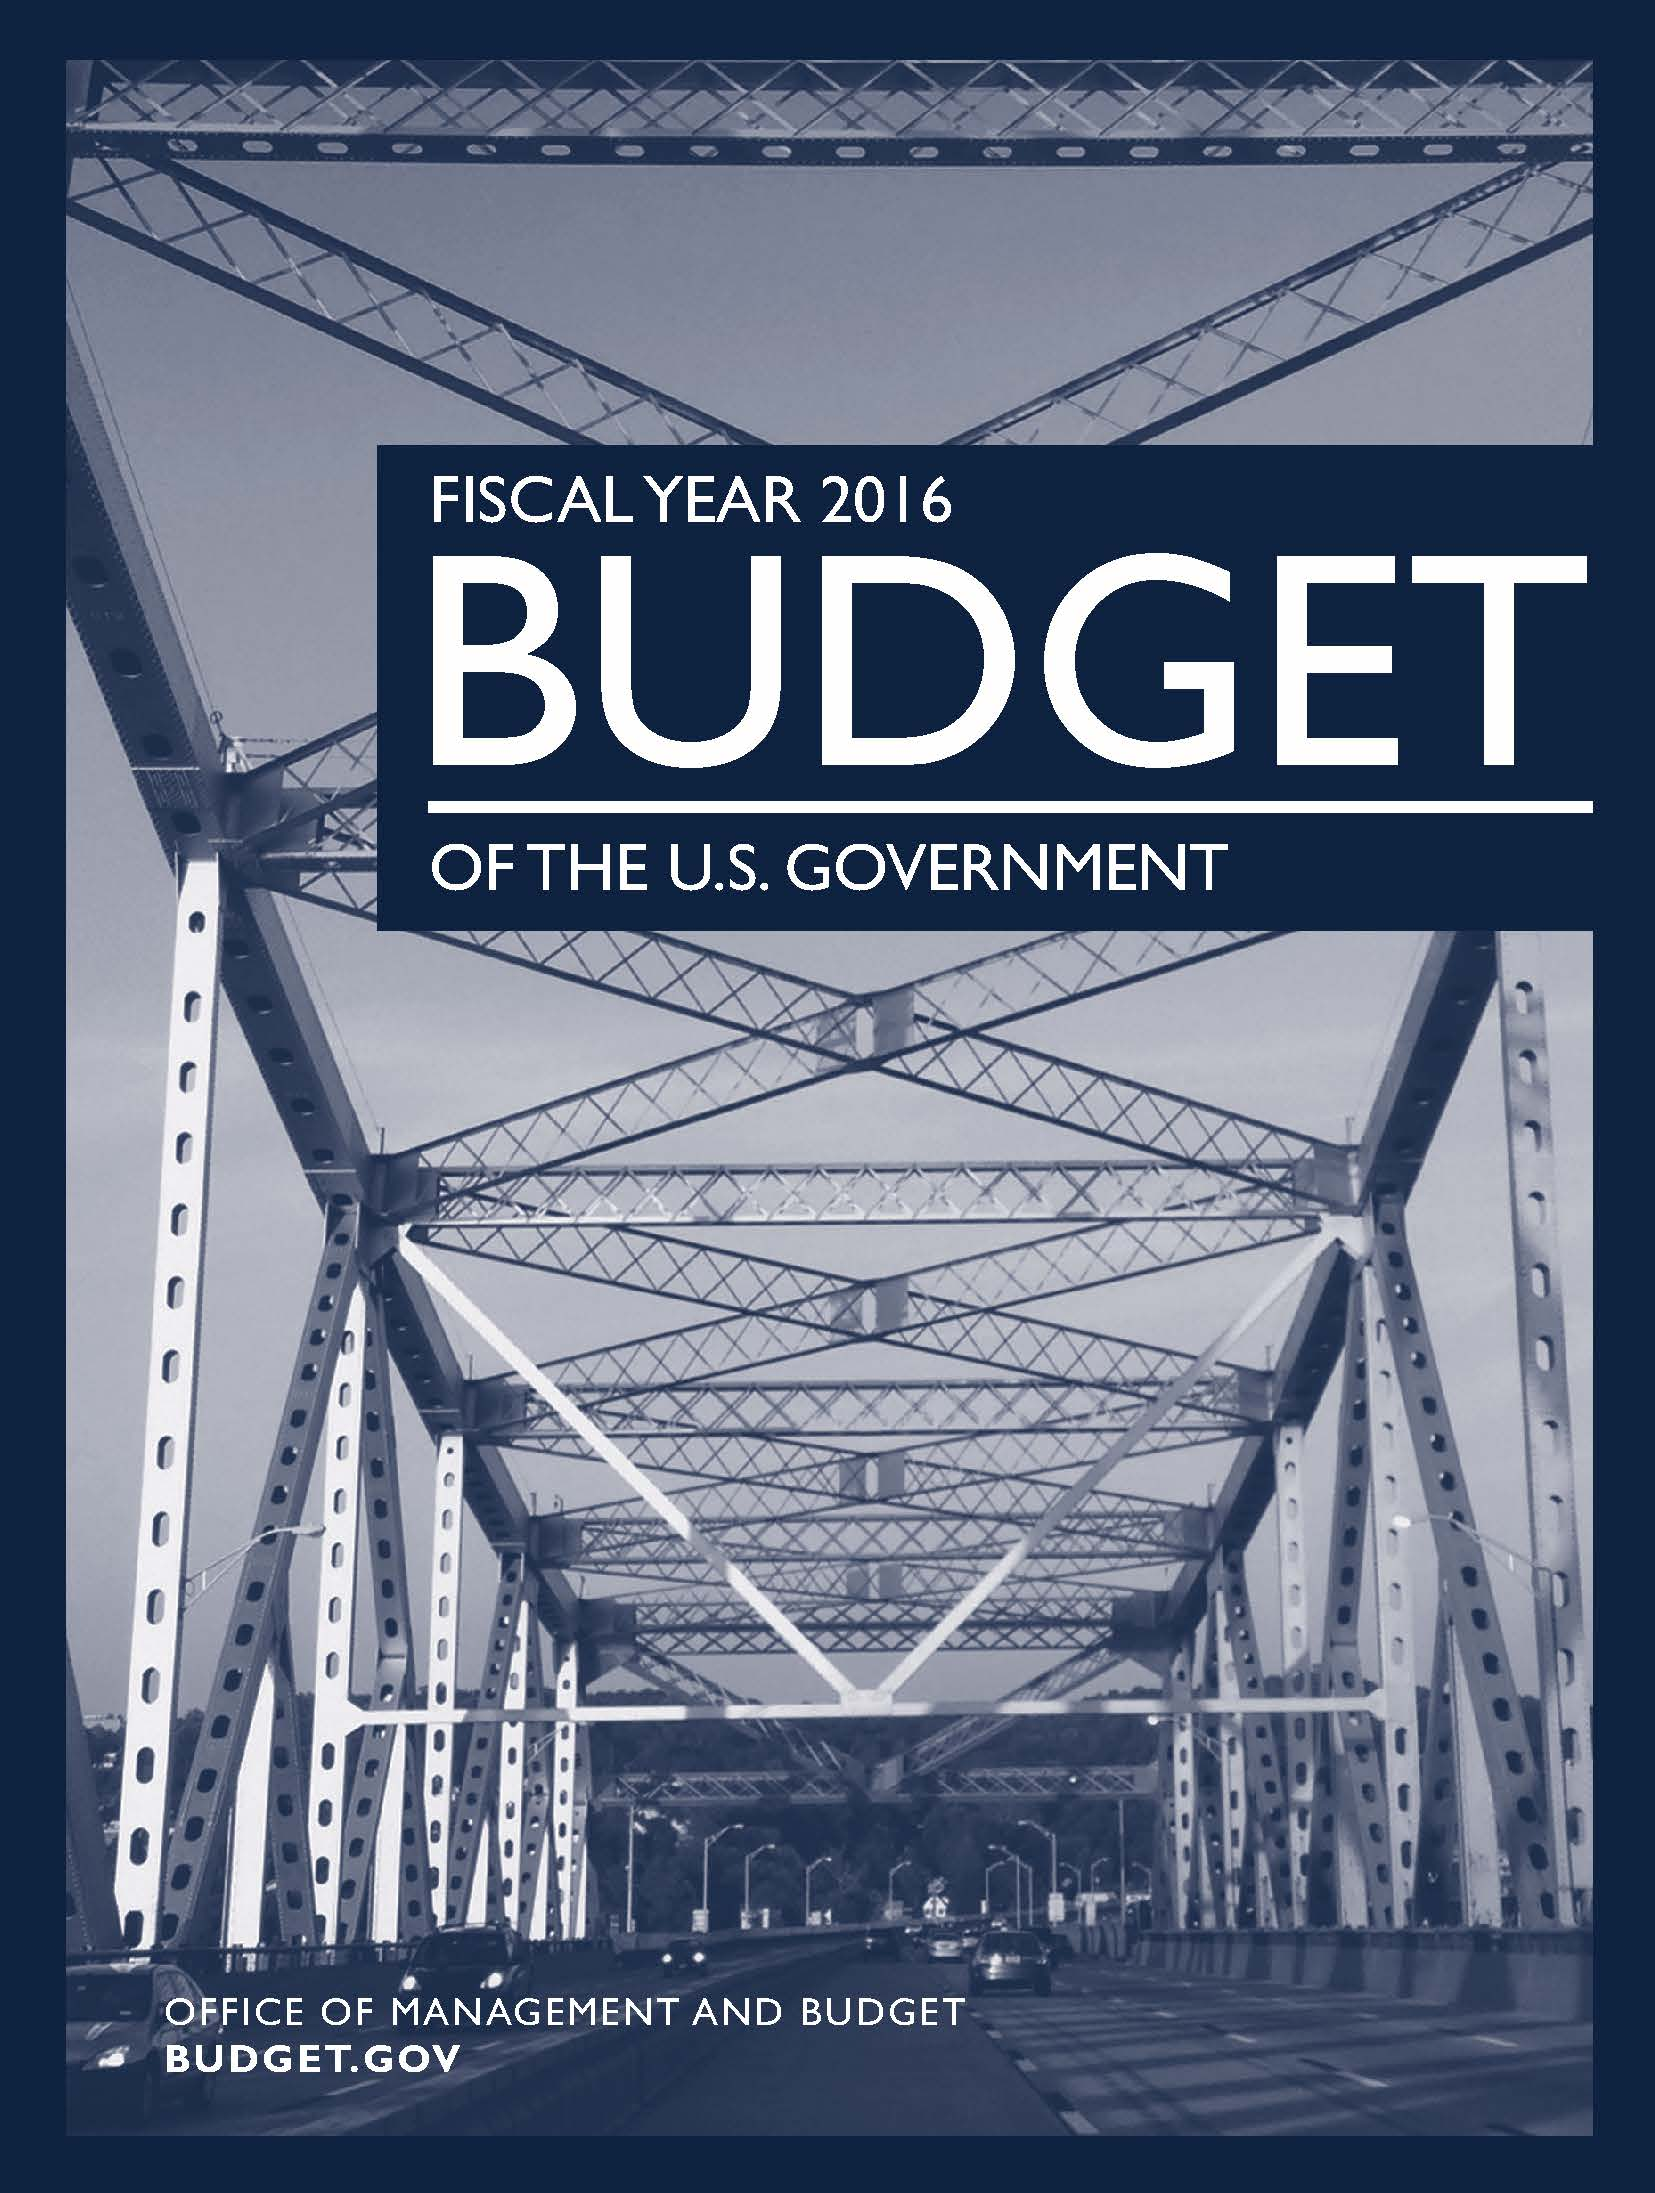 fiscal year 2016 budget of the u s  government  paper